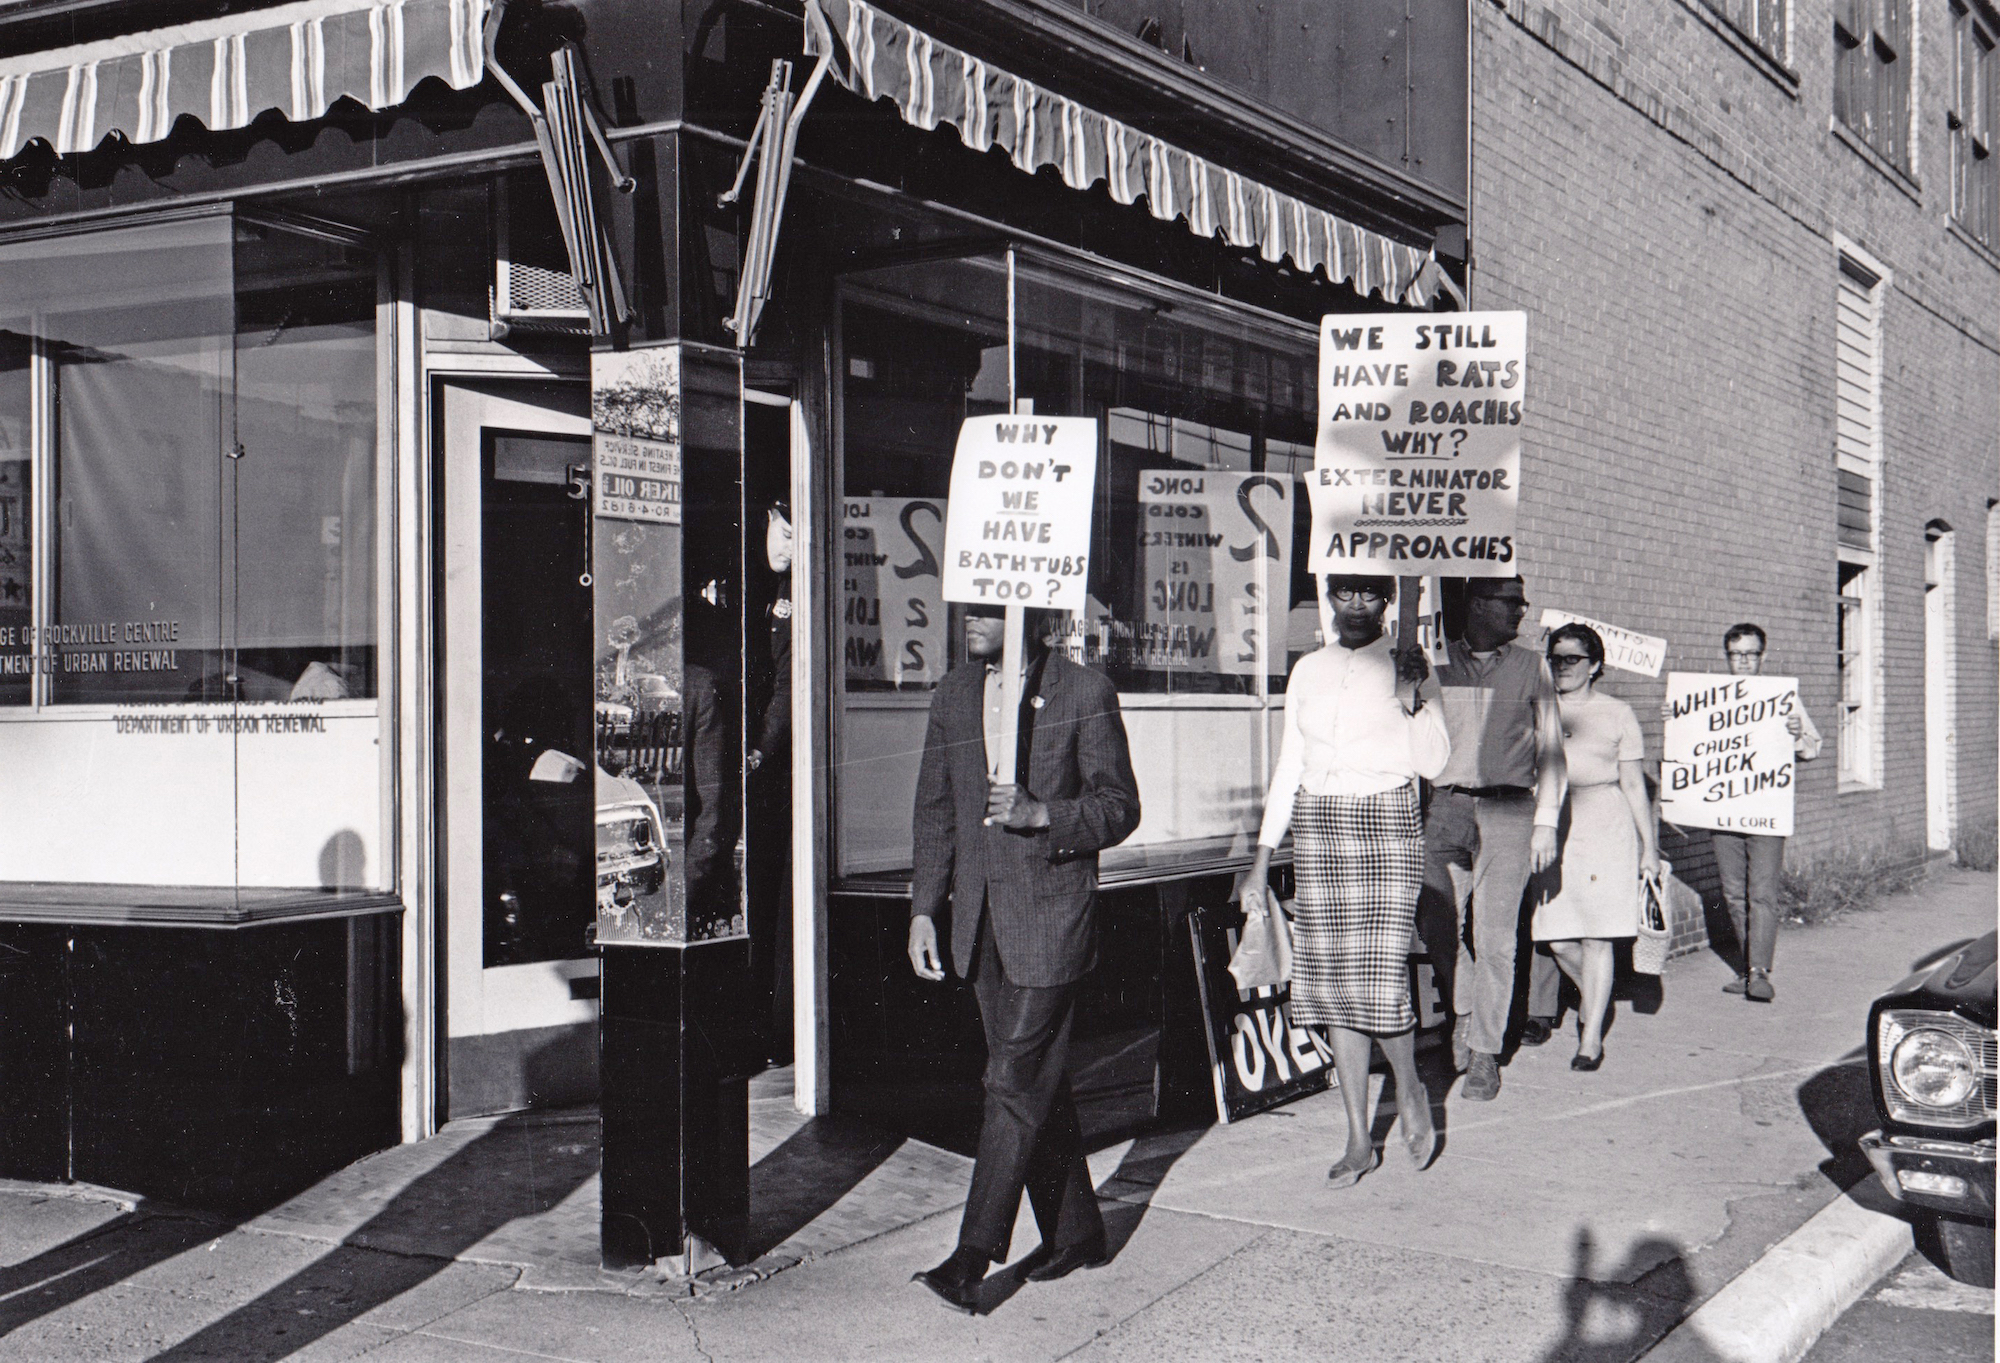 A black and white photo of a group of men and women holding picket signs outside an office